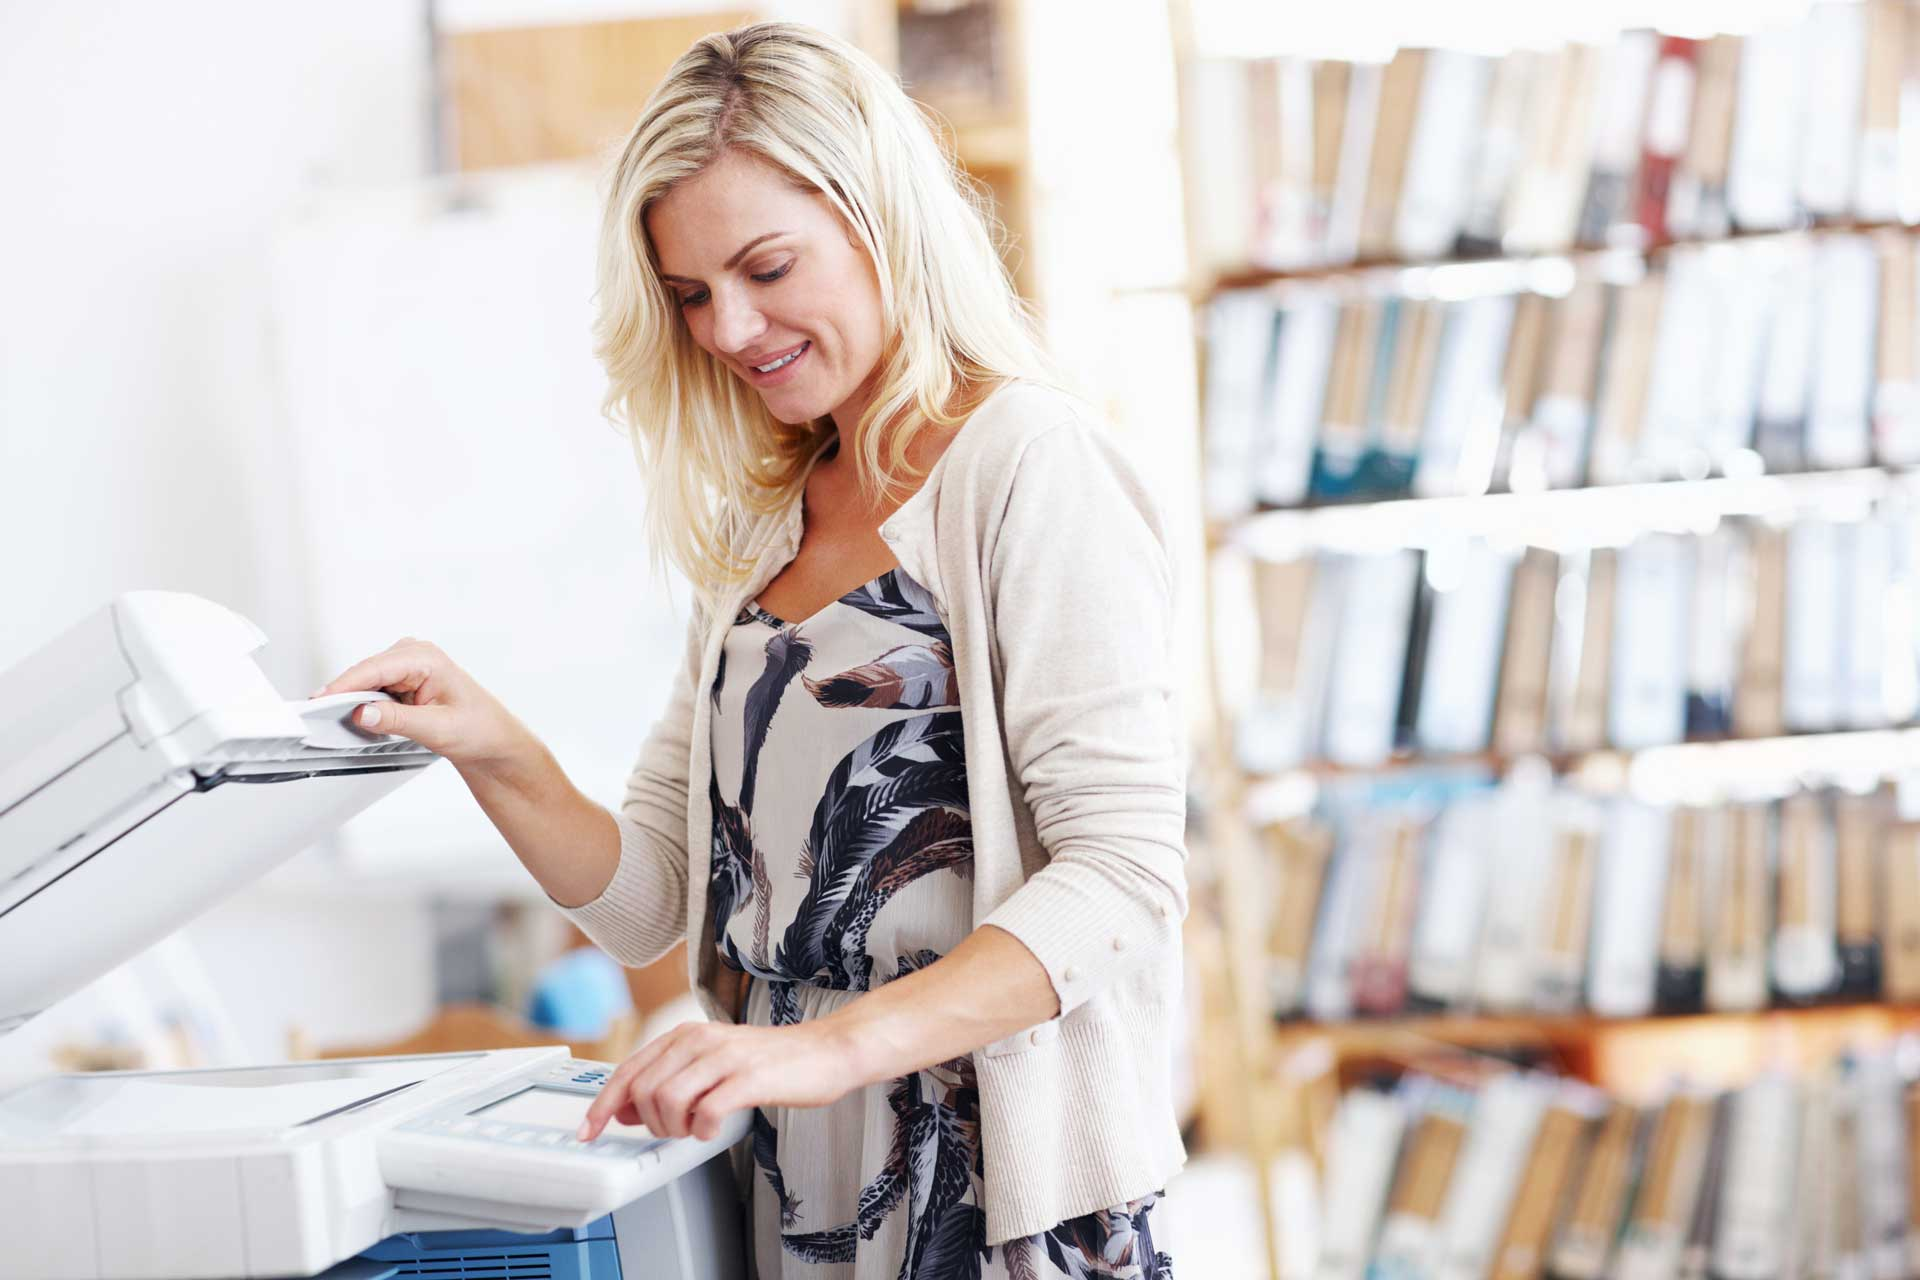 woman_using_copier_smiling